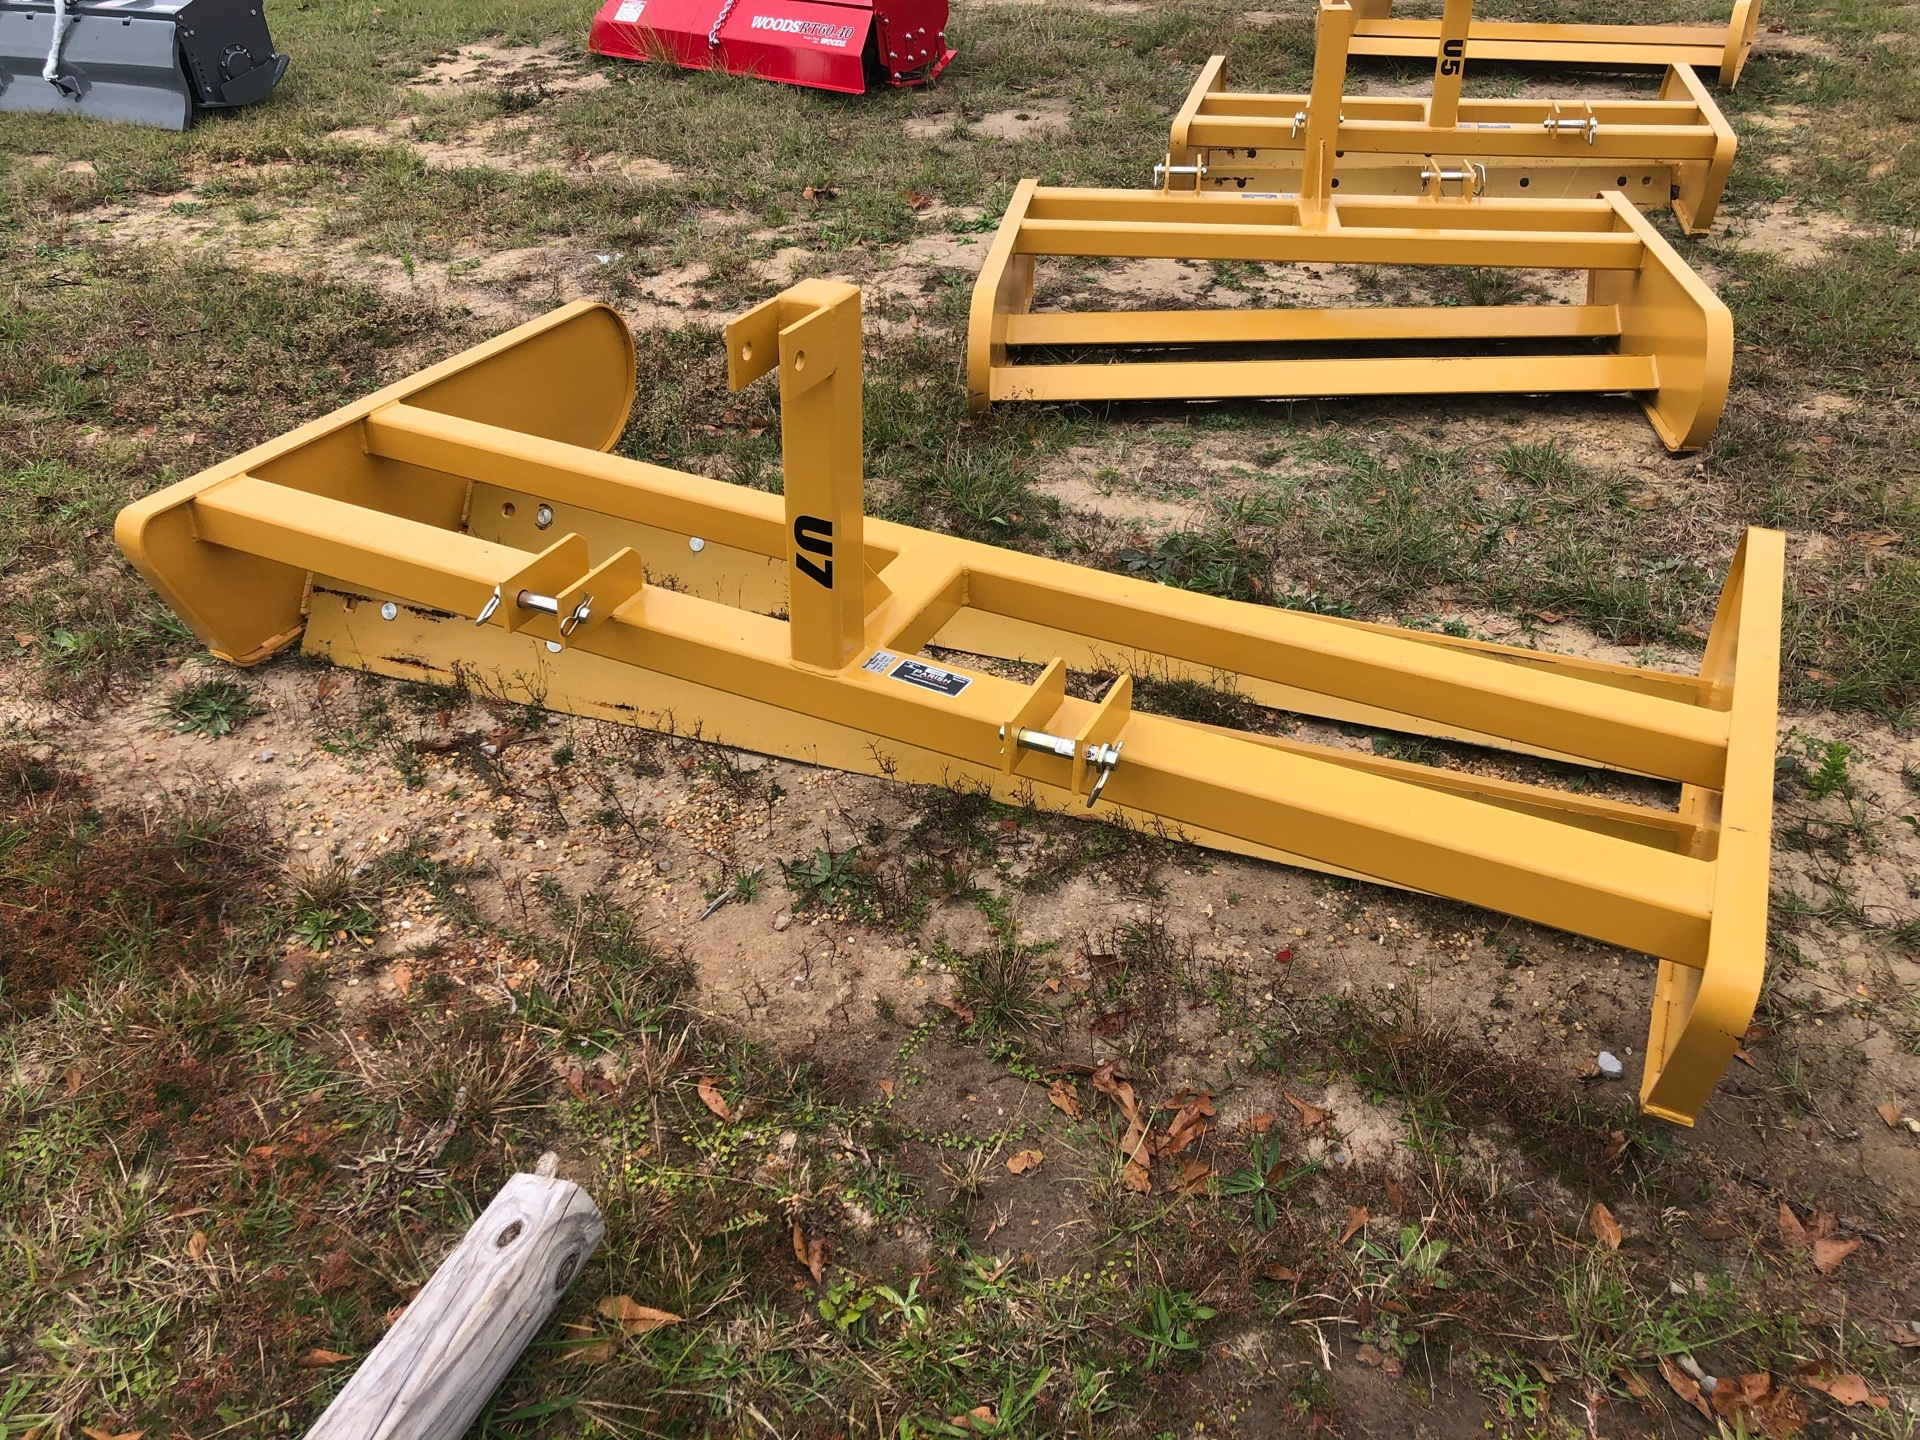 2021 Ranchland Implements 7' Land Leveler - U7 in Saucier, Mississippi - Photo 1